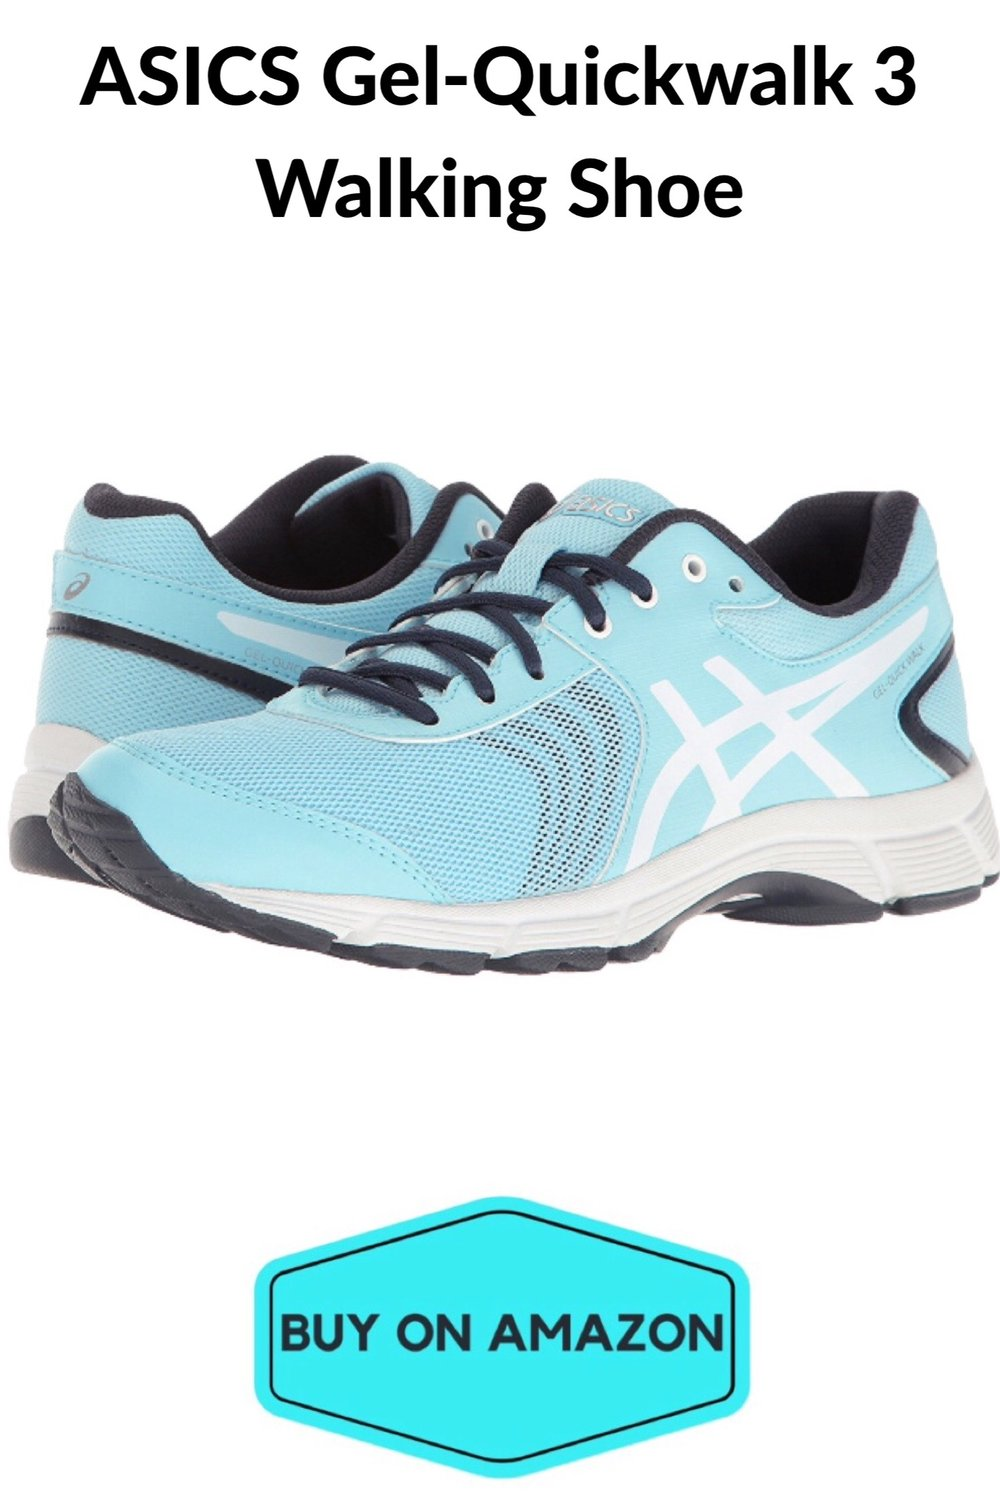 ASICS Gel-Quickwalk 3 Women's Walking Shoe